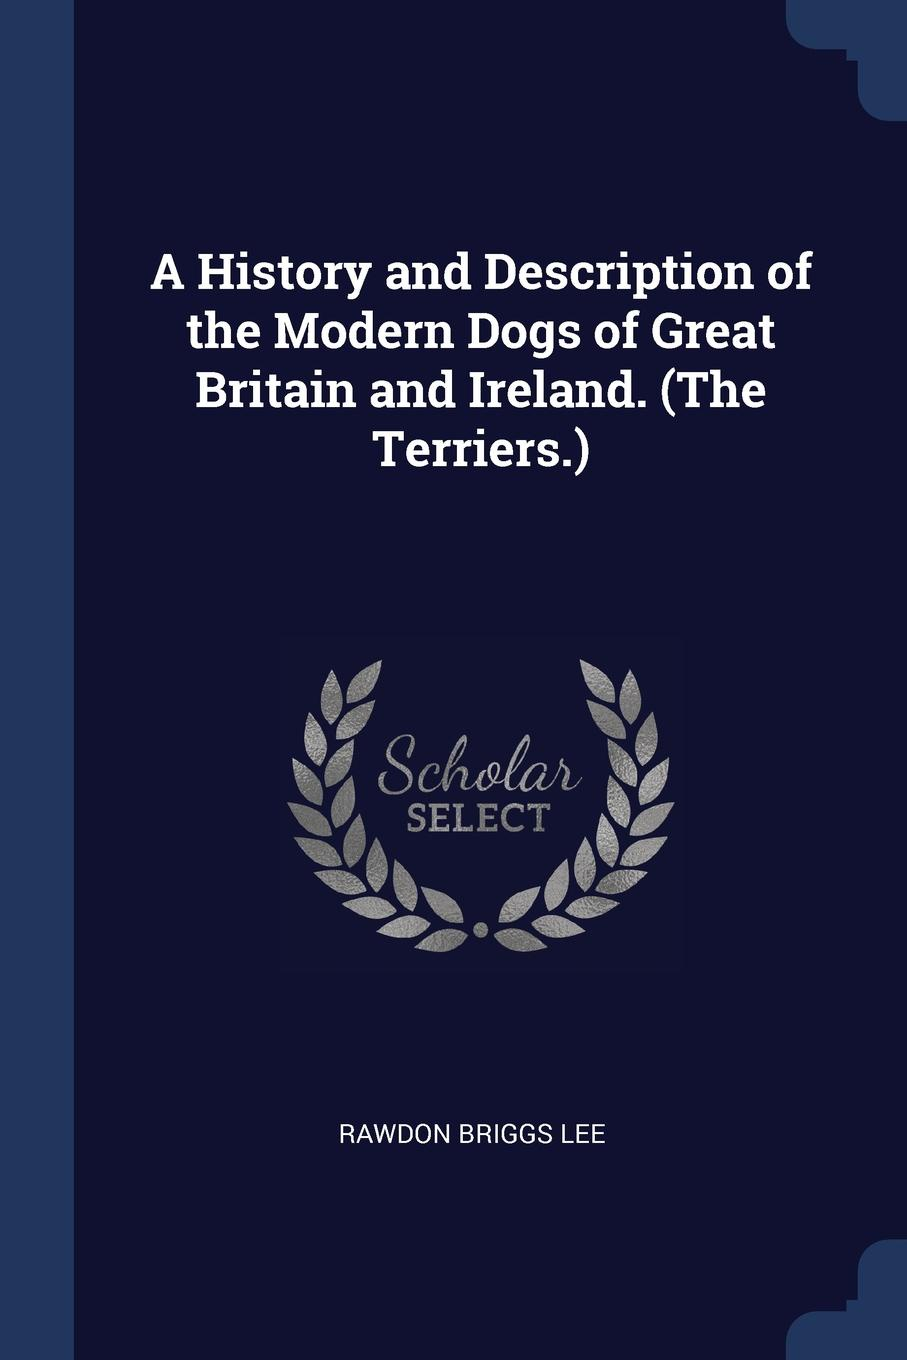 A History and Description of the Modern Dogs of Great Britain and Ireland. (The Terriers.)